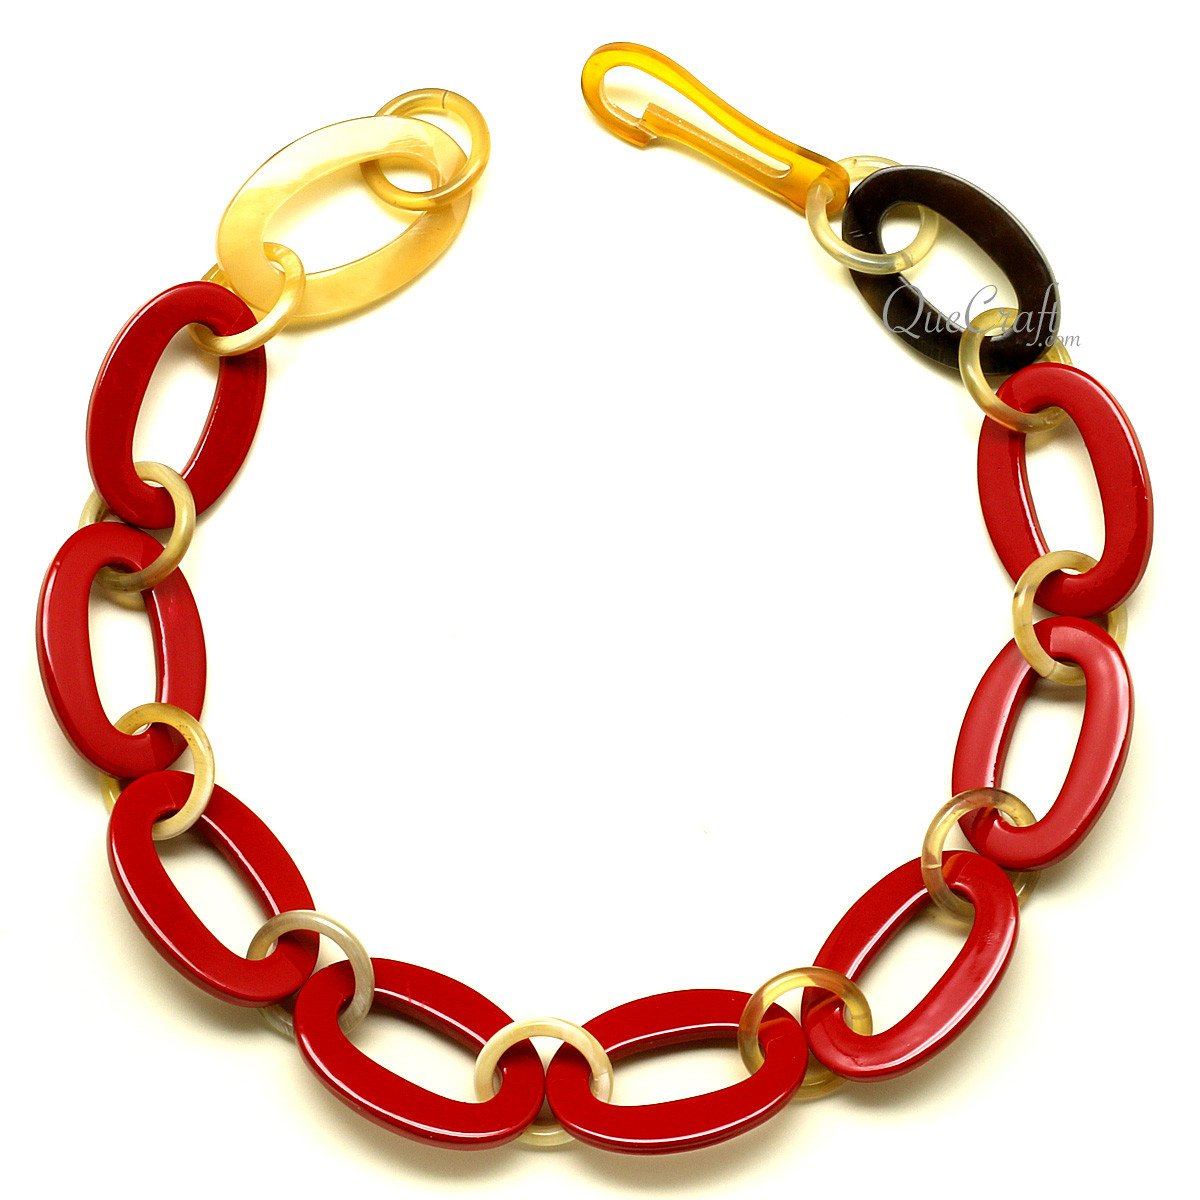 Horn & Lacquer Chain Necklace #12610 - HORN.JEWELRY